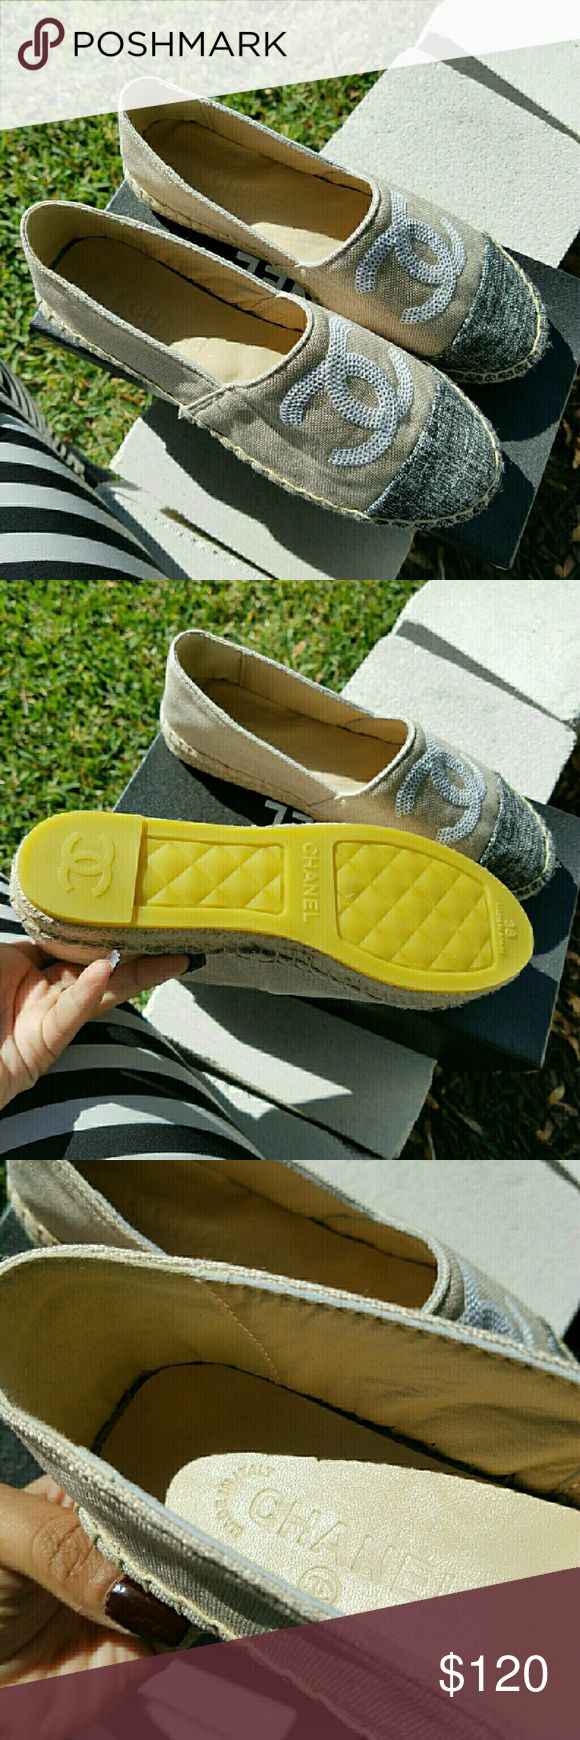 Chanel Espadrilles Brand new . PRICE REFLECTS AUTHENTICITY CHANEL Shoes